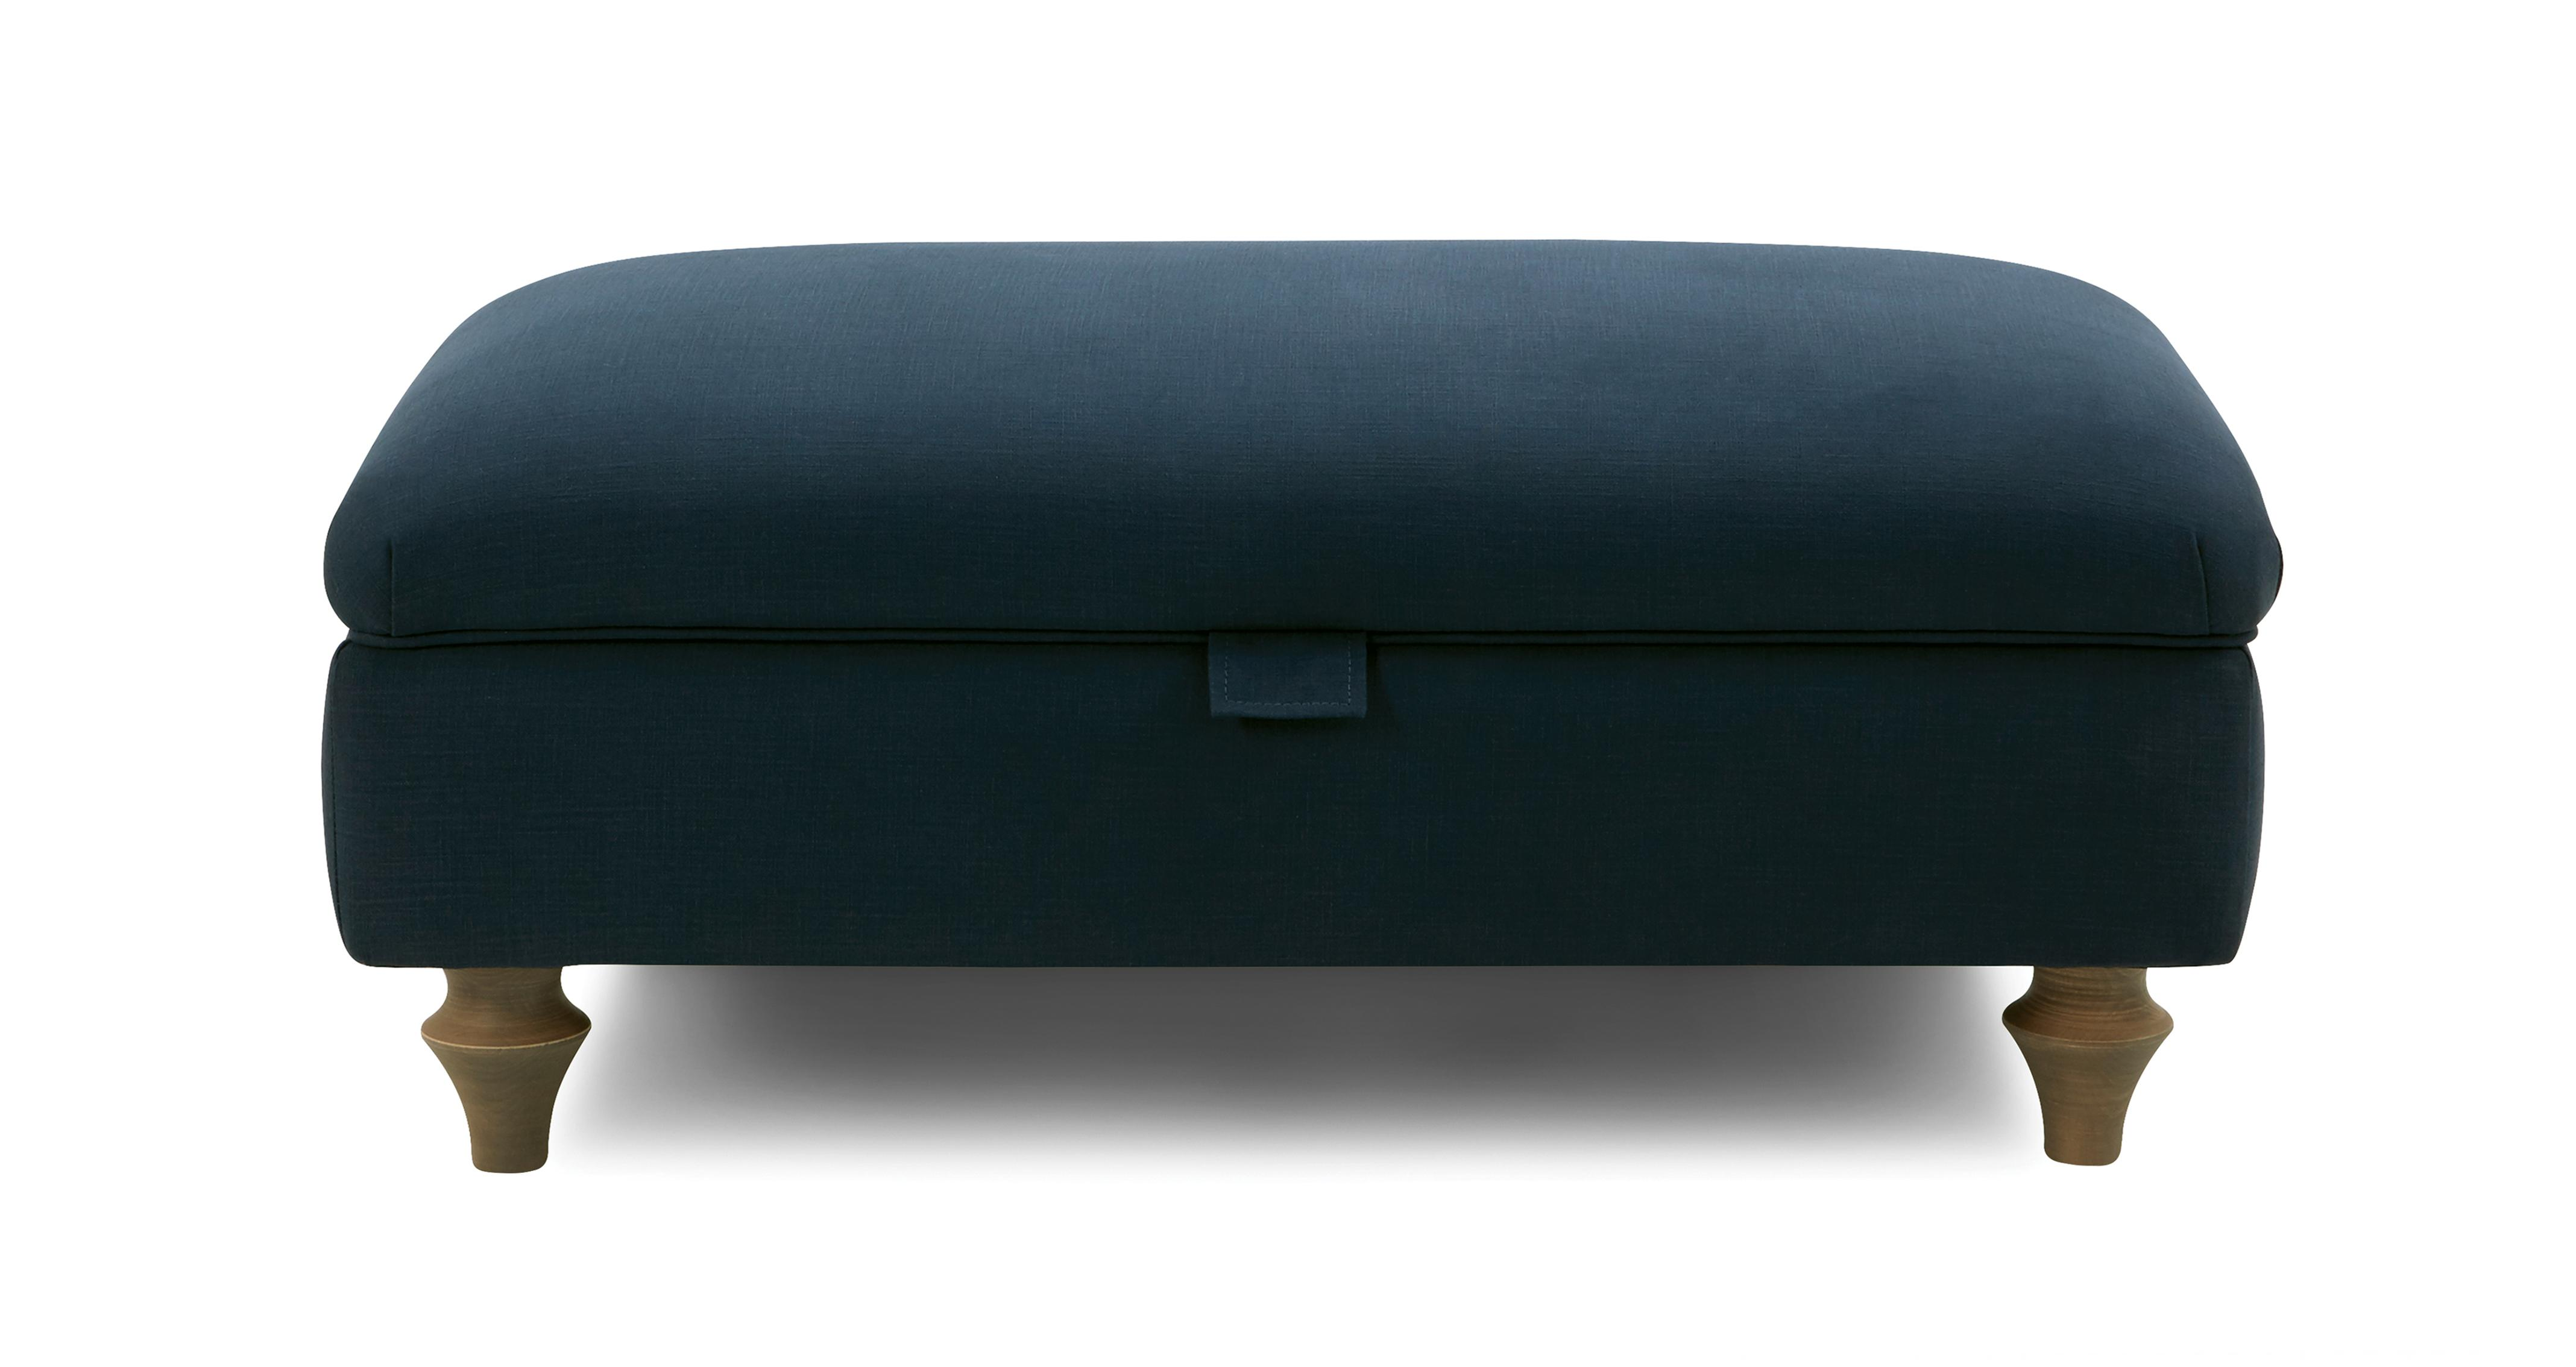 dfs cambridge sofa reviews innovation dunckerstrase berlin cotton storage footstool plain and